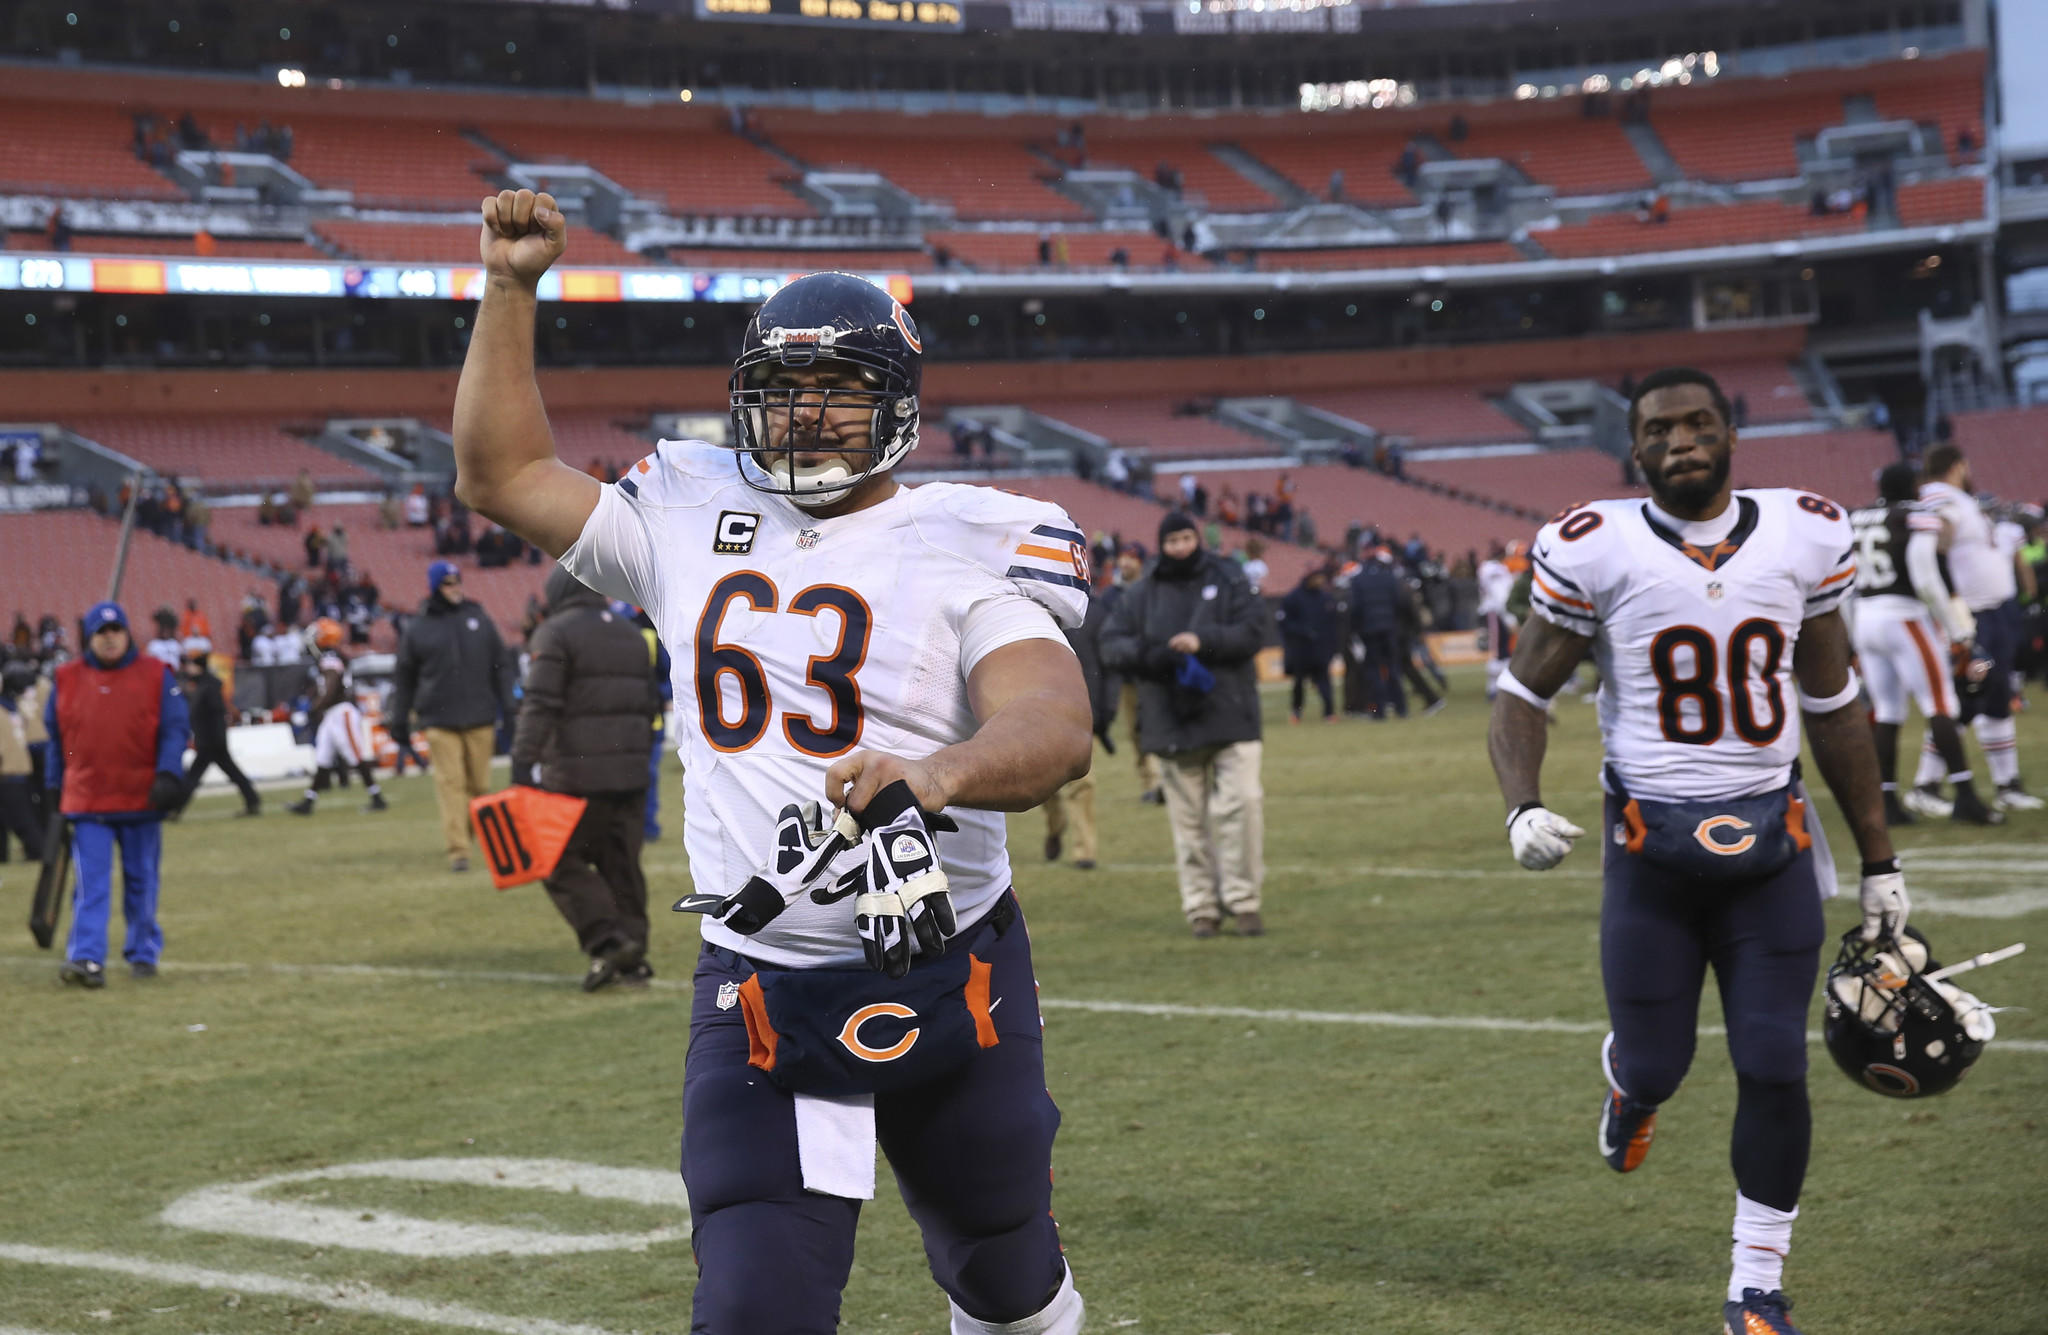 Chicago Bears center Roberto Garza leaves the field after a win over the Cleveland Browns, at FirstEnergy Stadium.